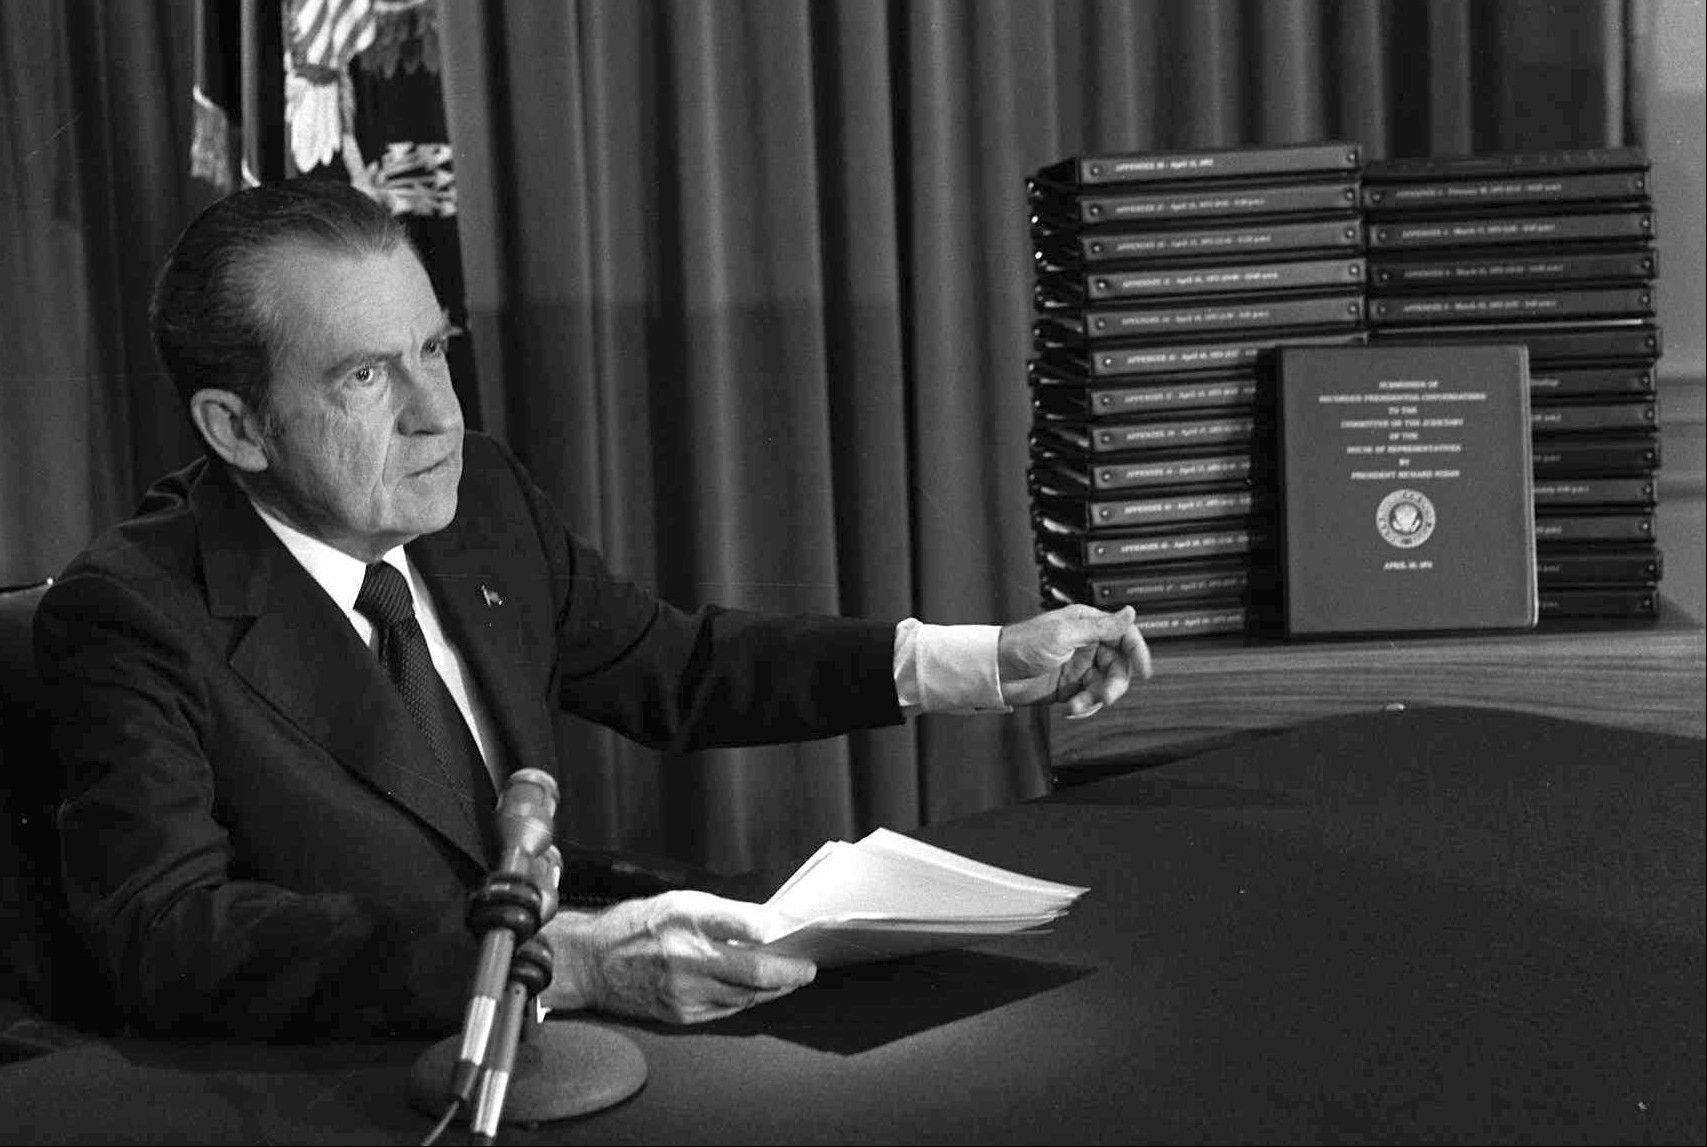 President Richard M. Nixon points to the transcripts of the White House tapes after he announced during a nationally-televised speech that he would turn over the transcripts to House impeachment investigators, in Washington. The last 340 hours of tapes from Nixon's White House were released Wednesday, along with more than 140,000 pages of text materials.